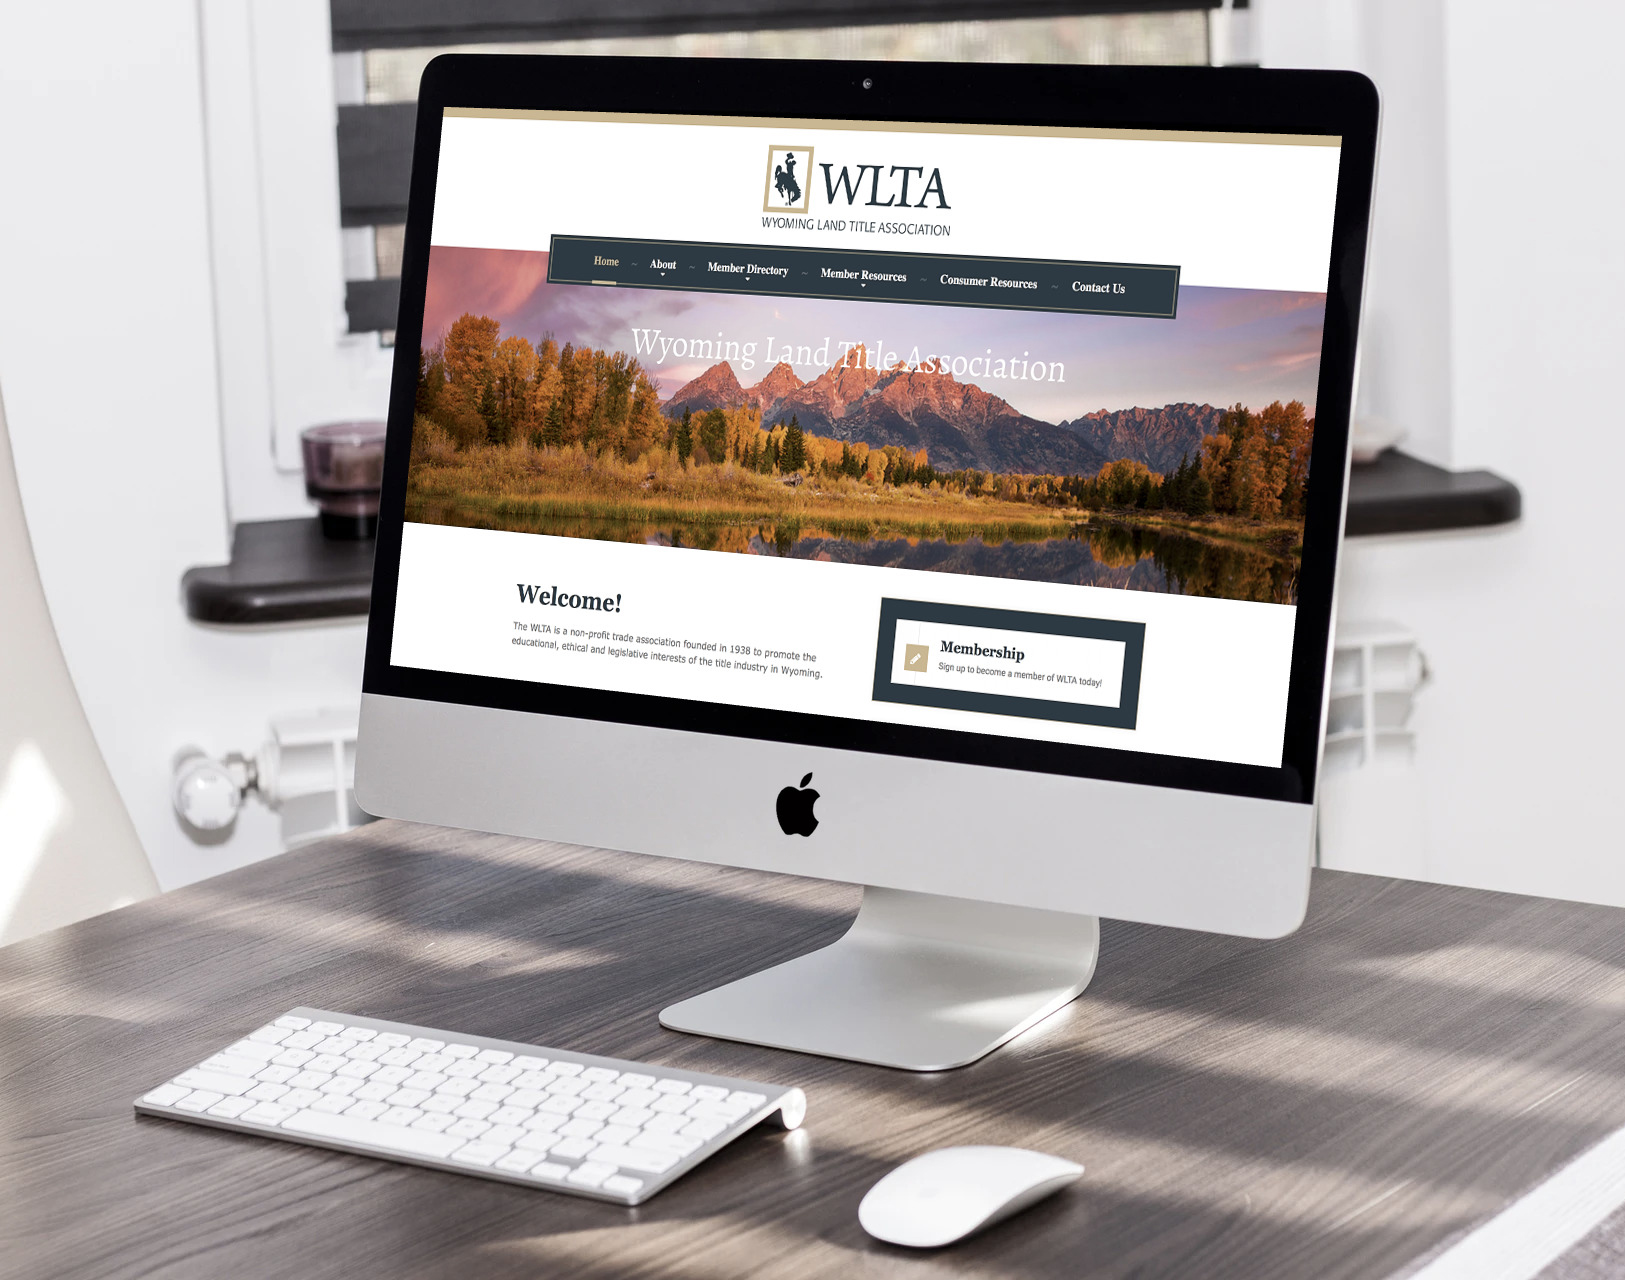 Wyoming Land Title Association website design